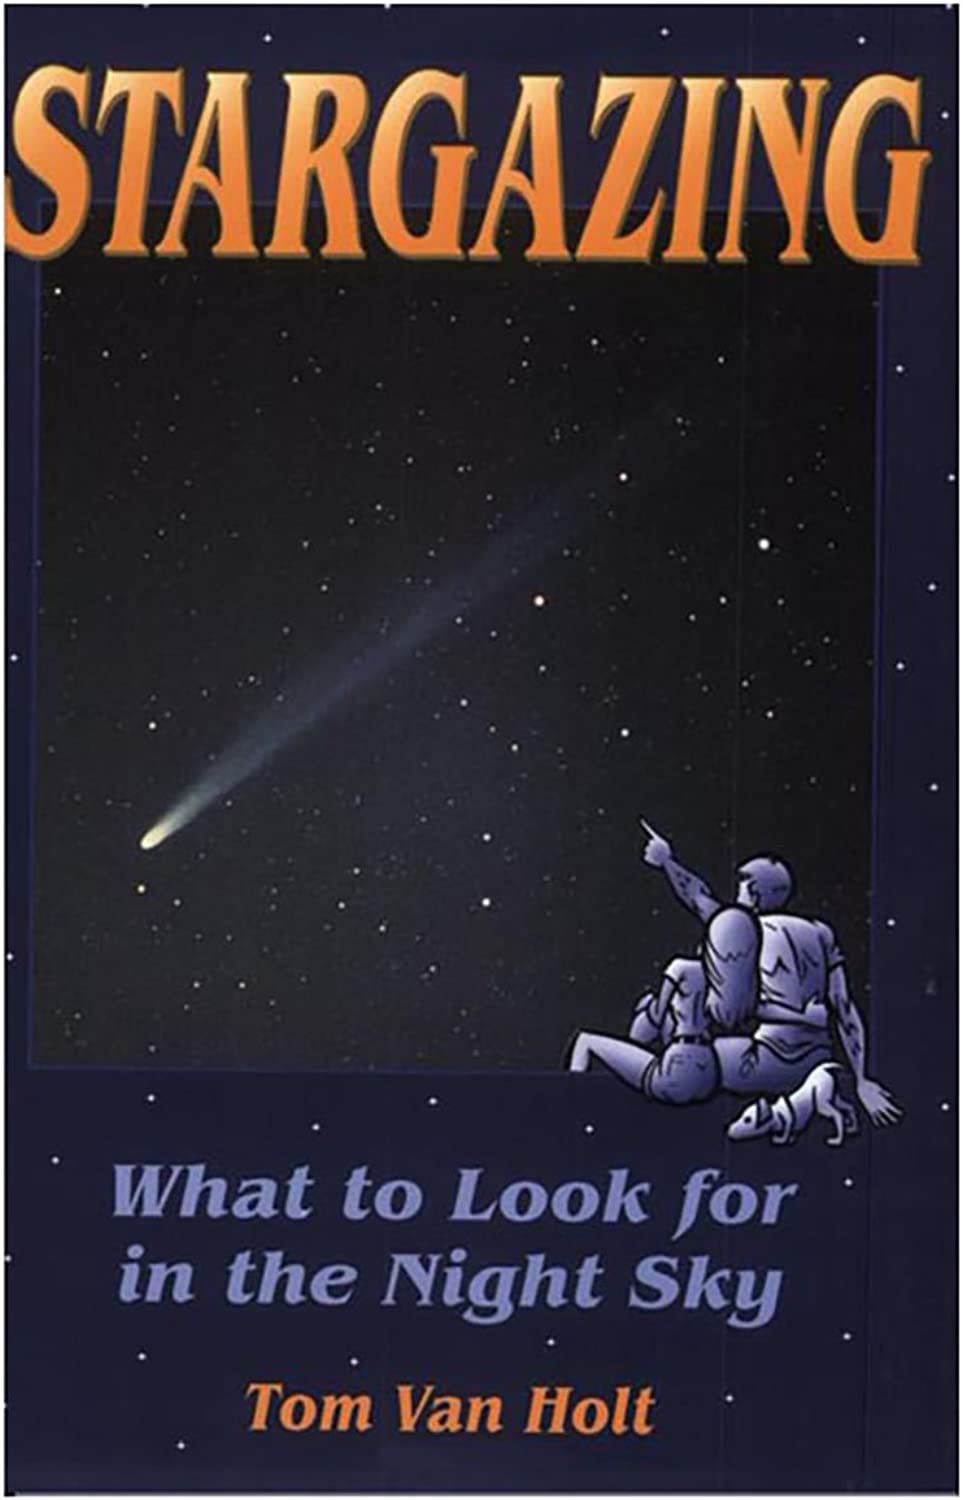 Night Sky Guide, Dr. Rick Fienberg, PublisherSteven NSG-116